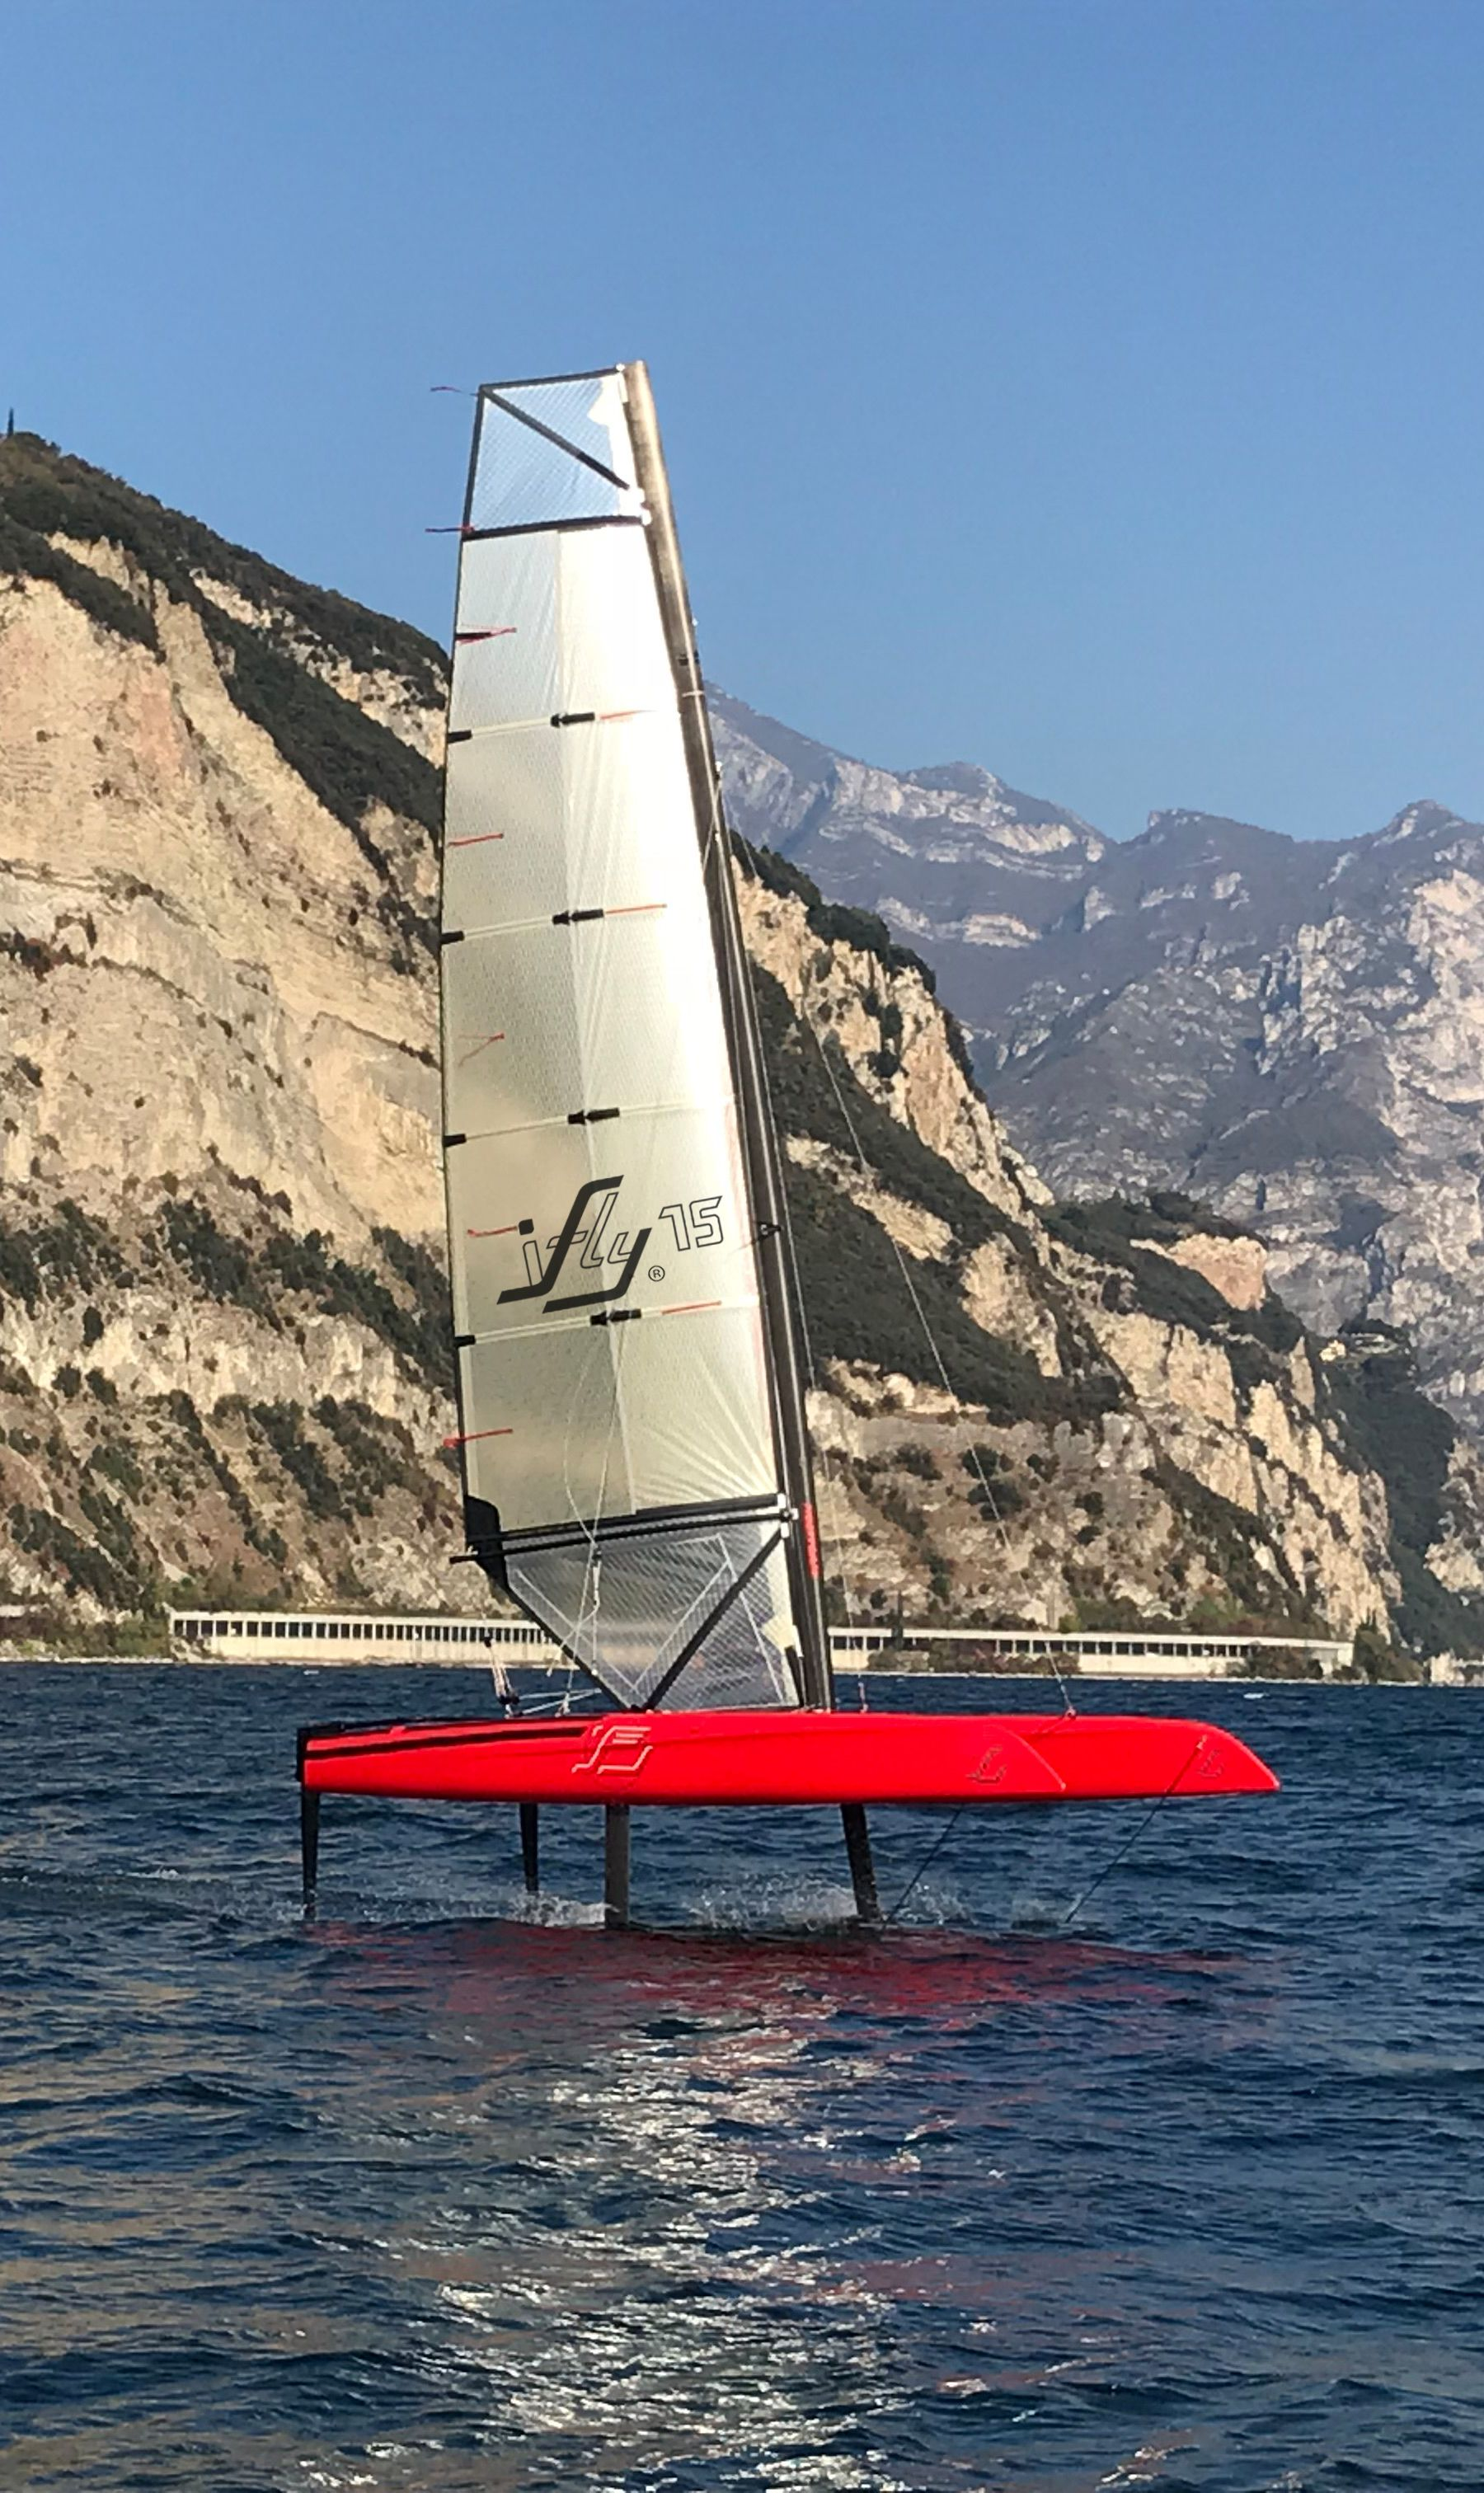 Hydrofoil Sailing An Exhilarating Feeling Ifly15 Maximum Performance And Stability With T Foils And Automatic Foil Control System Ifly15 By Cec Catamaran V 2020 G